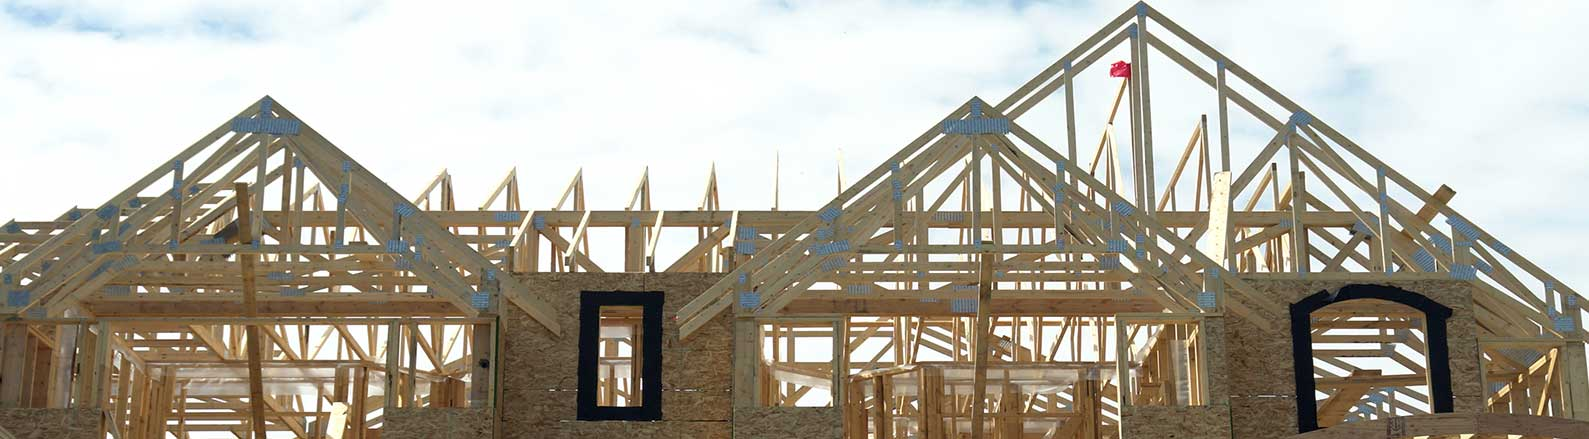 timber frames and trusses